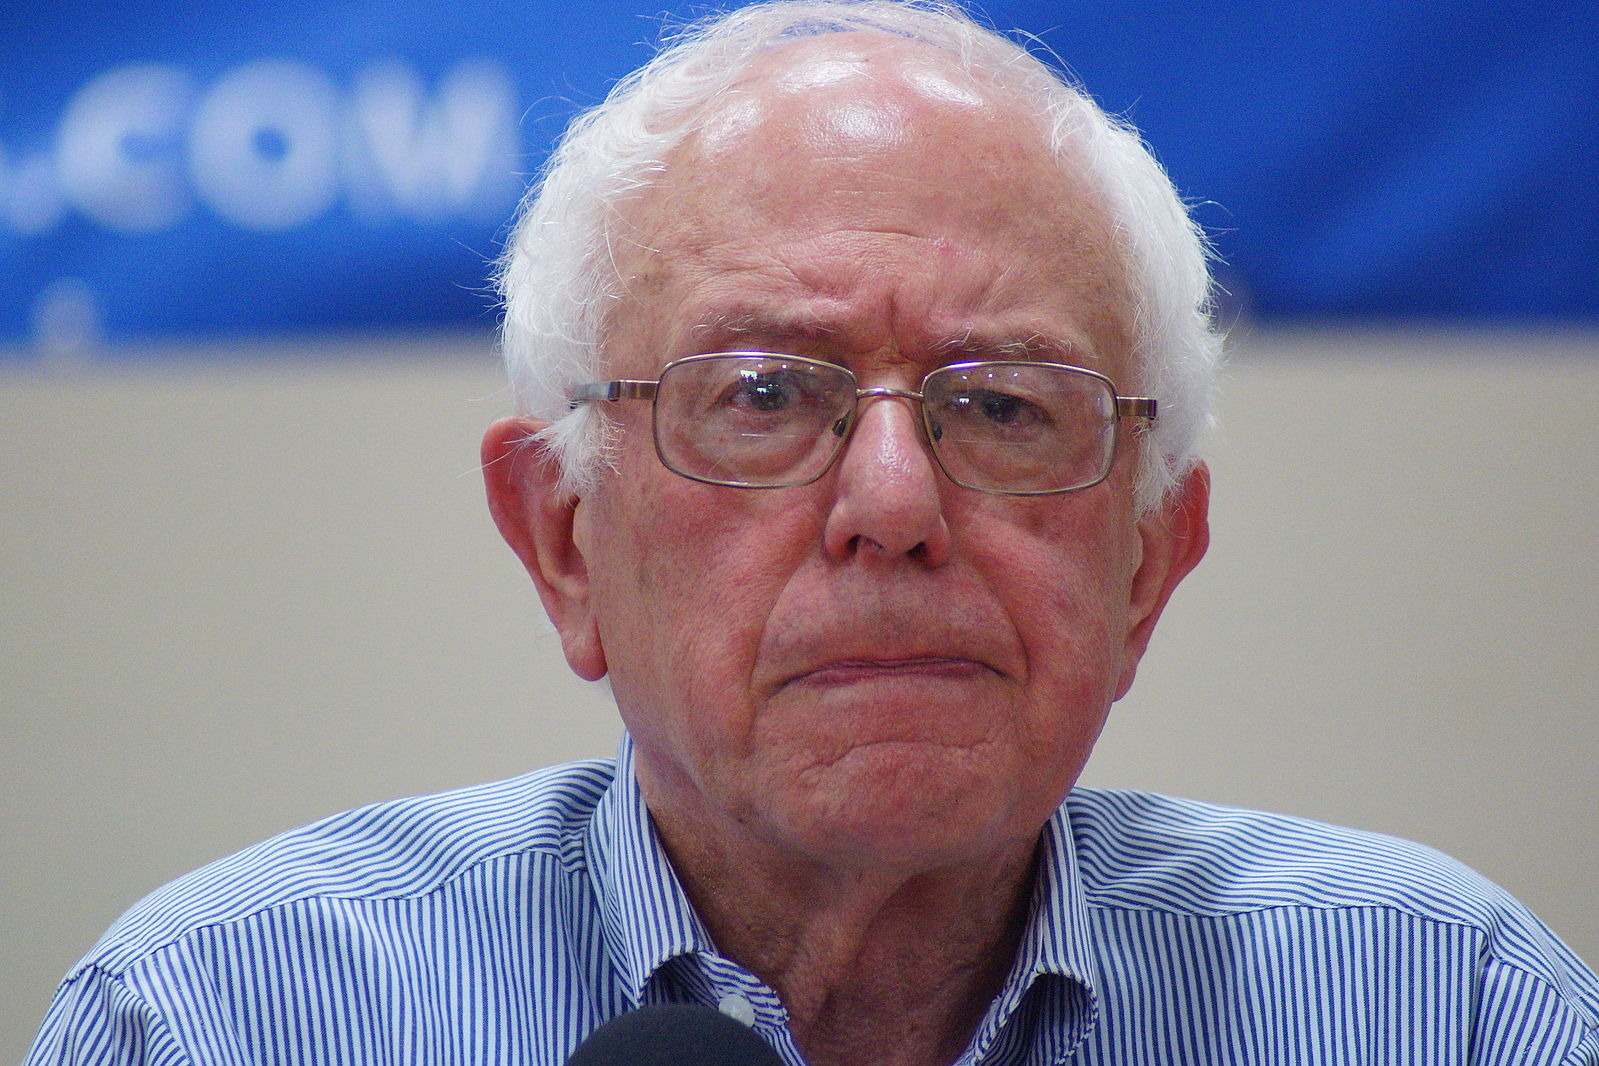 Bernie Sanders S Misguided Amazon Bill Would Backfire On